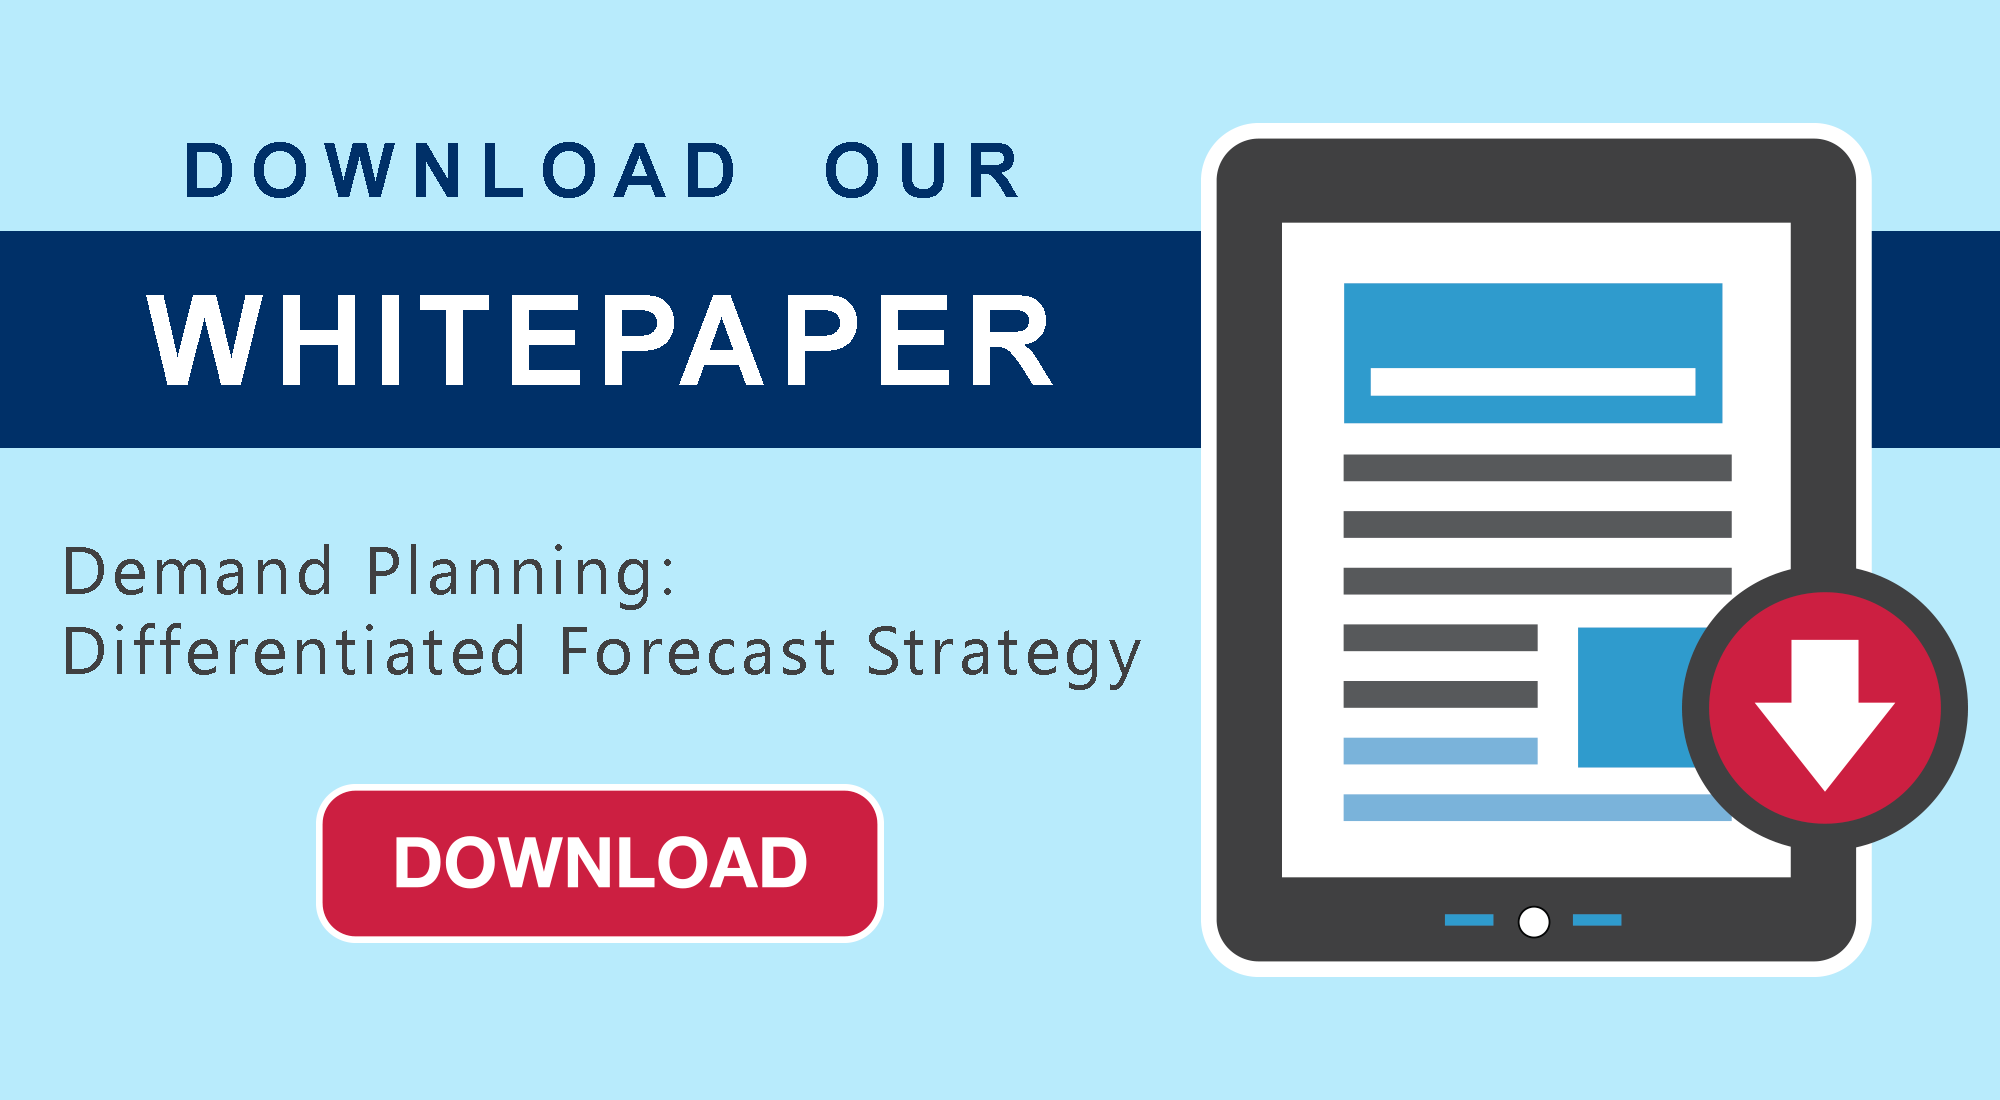 Demand Planning Differentiated Forecast Strategy Whitepaper